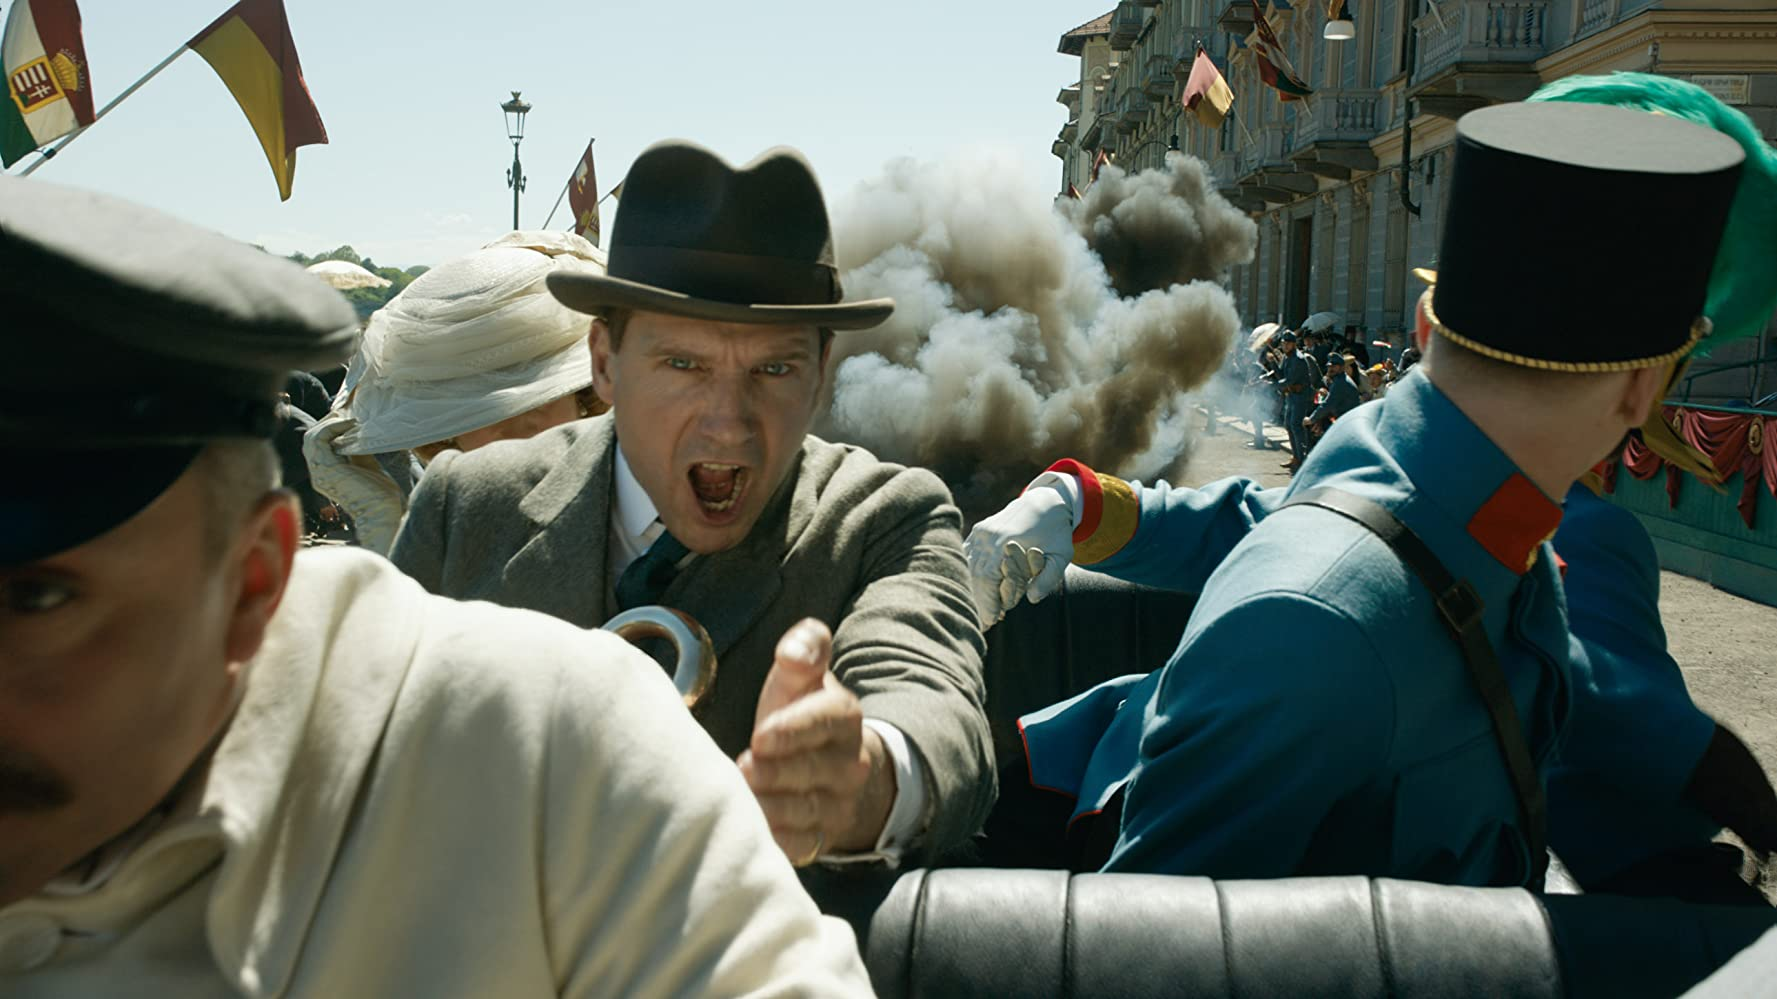 Ralph Fiennes in The King's Man (2020)